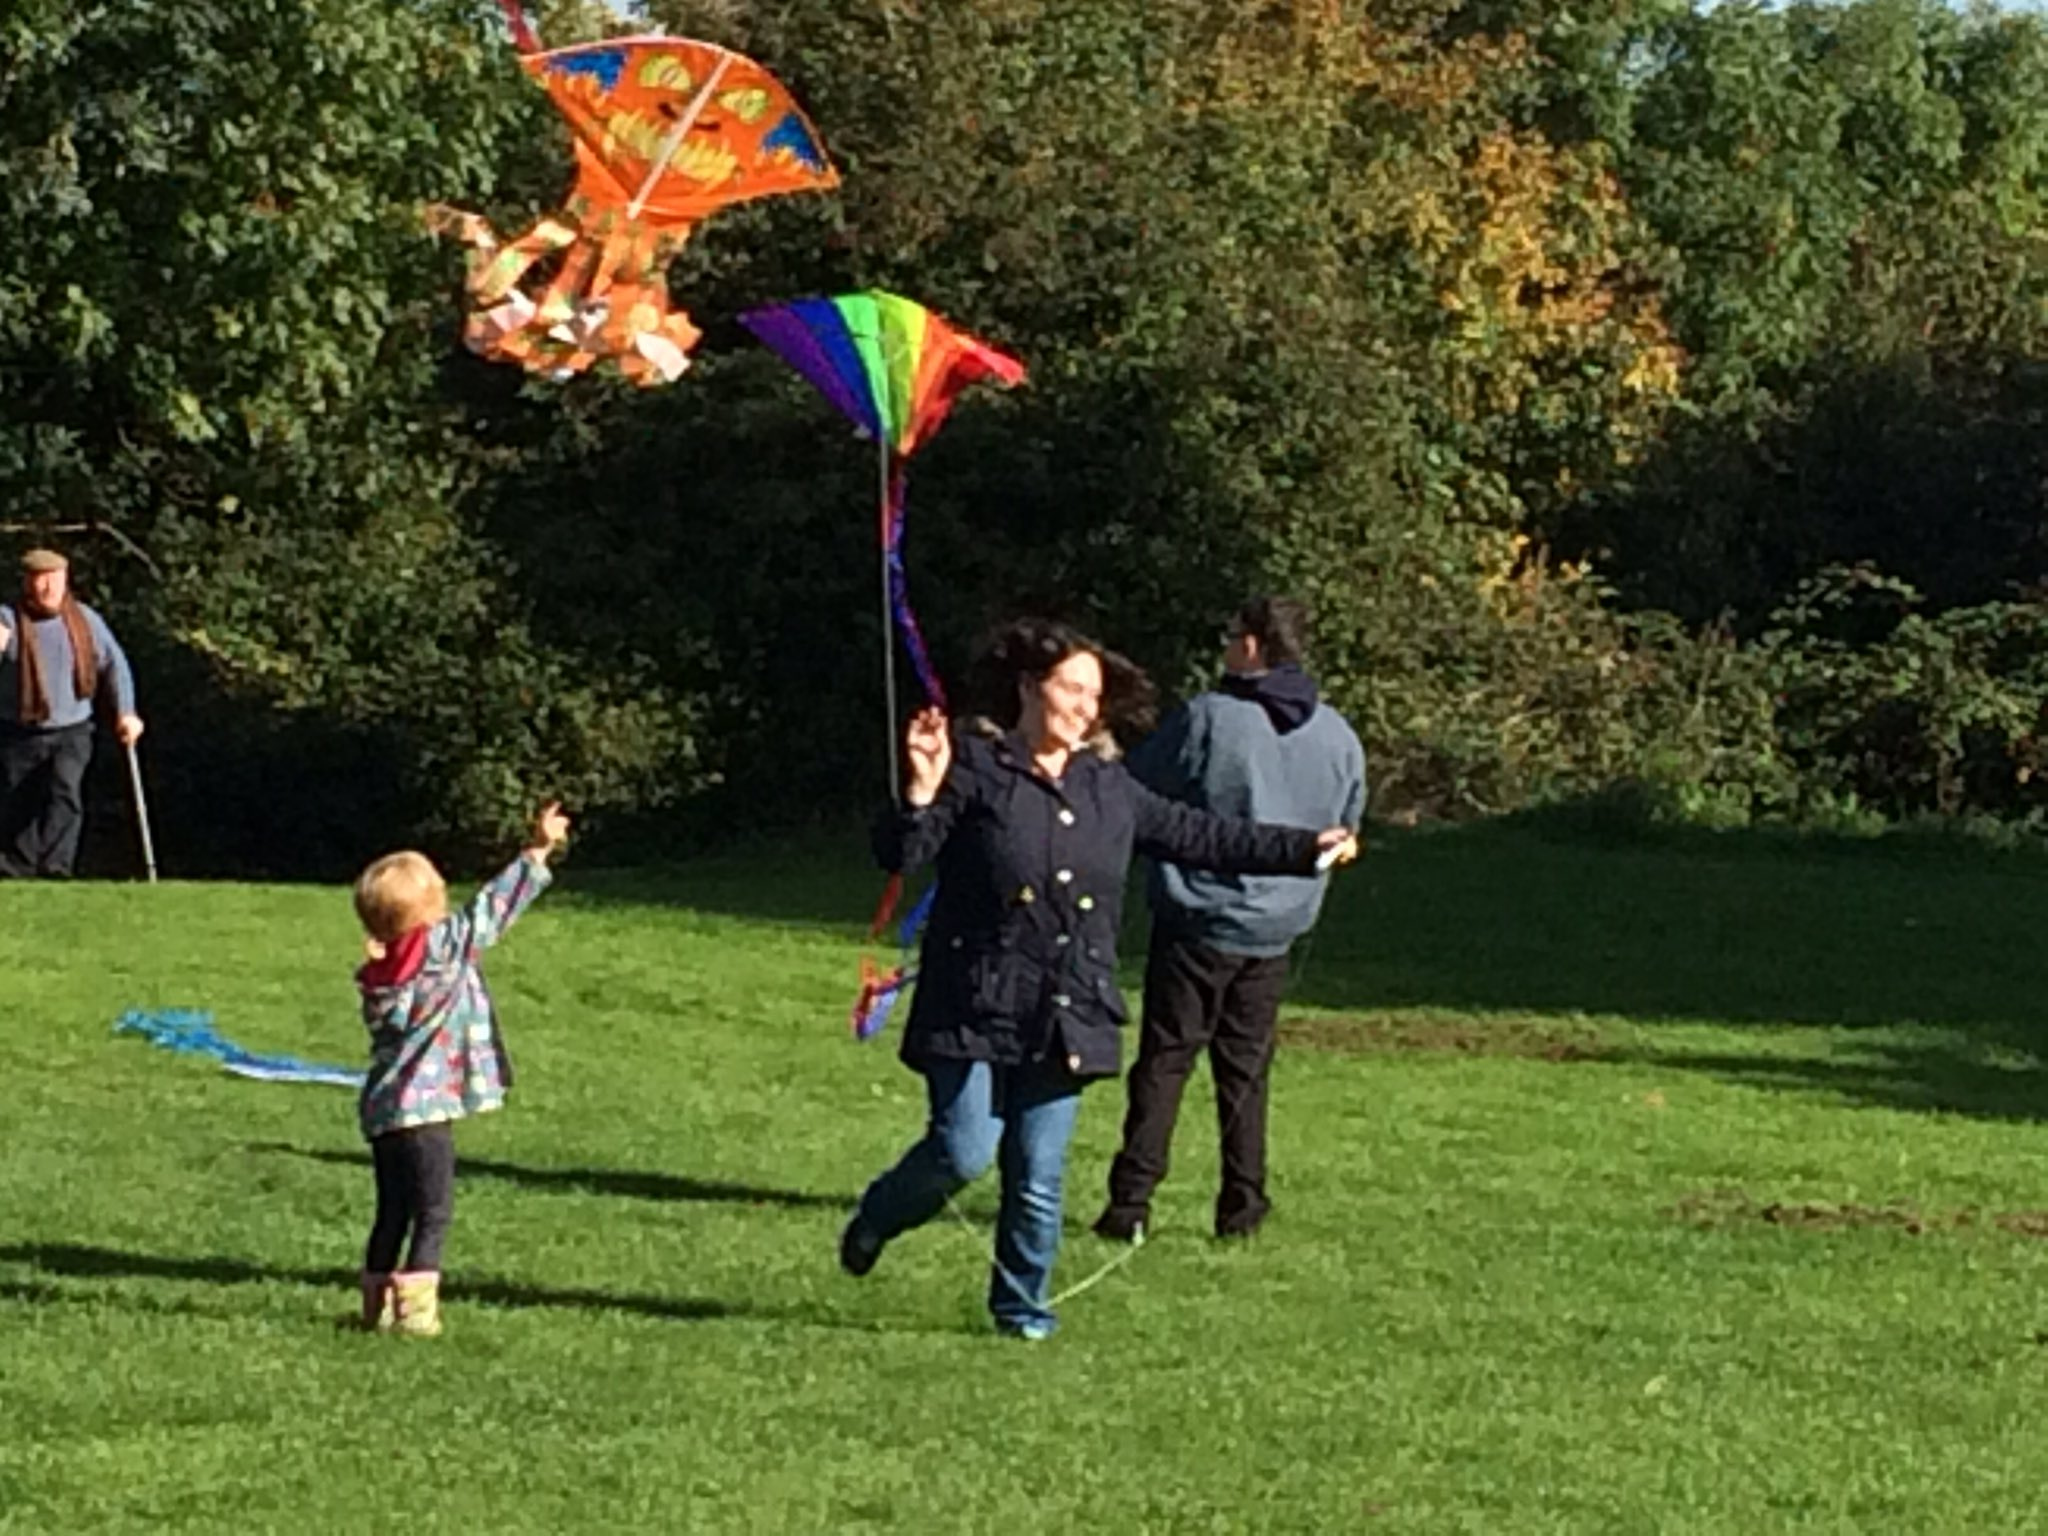 MT @FitterRuth: @christian_aid @RichardGrahamMP #SpeakUp Flying kites for climate change -Robinswood Hill @hainesart https://t.co/wrmnpmYpHL